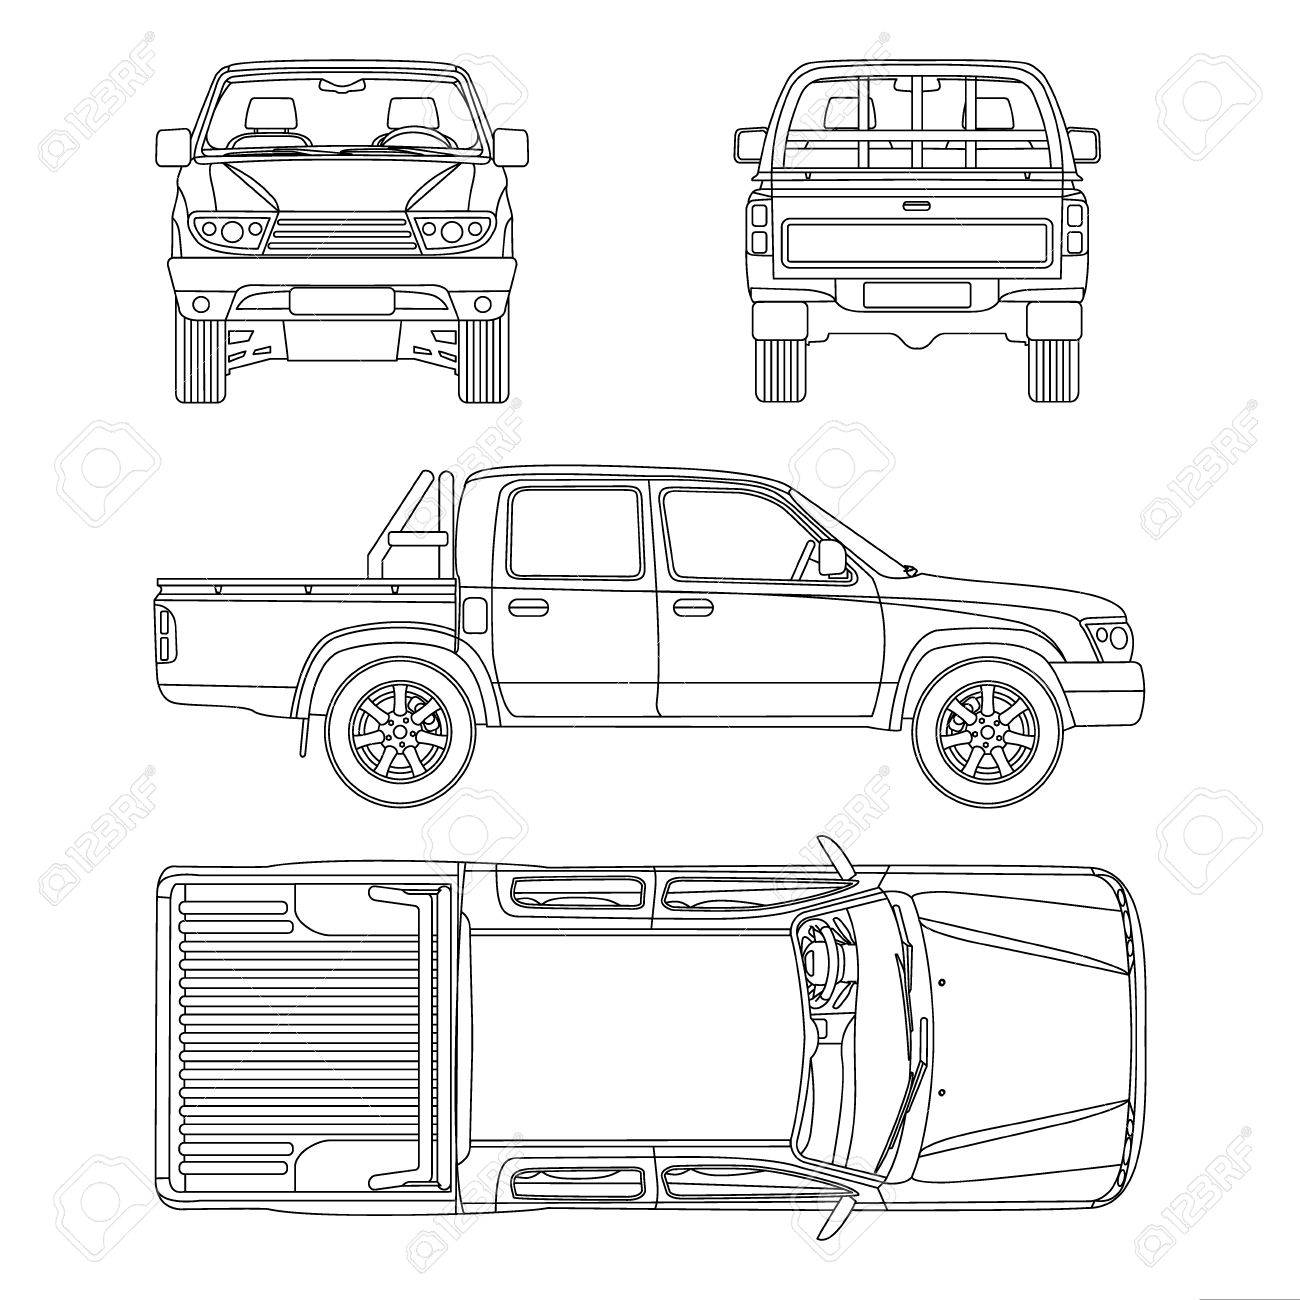 Pickup truck illustration blueprint royalty free cliparts vectors pickup truck illustration blueprint stock vector 55832521 malvernweather Image collections